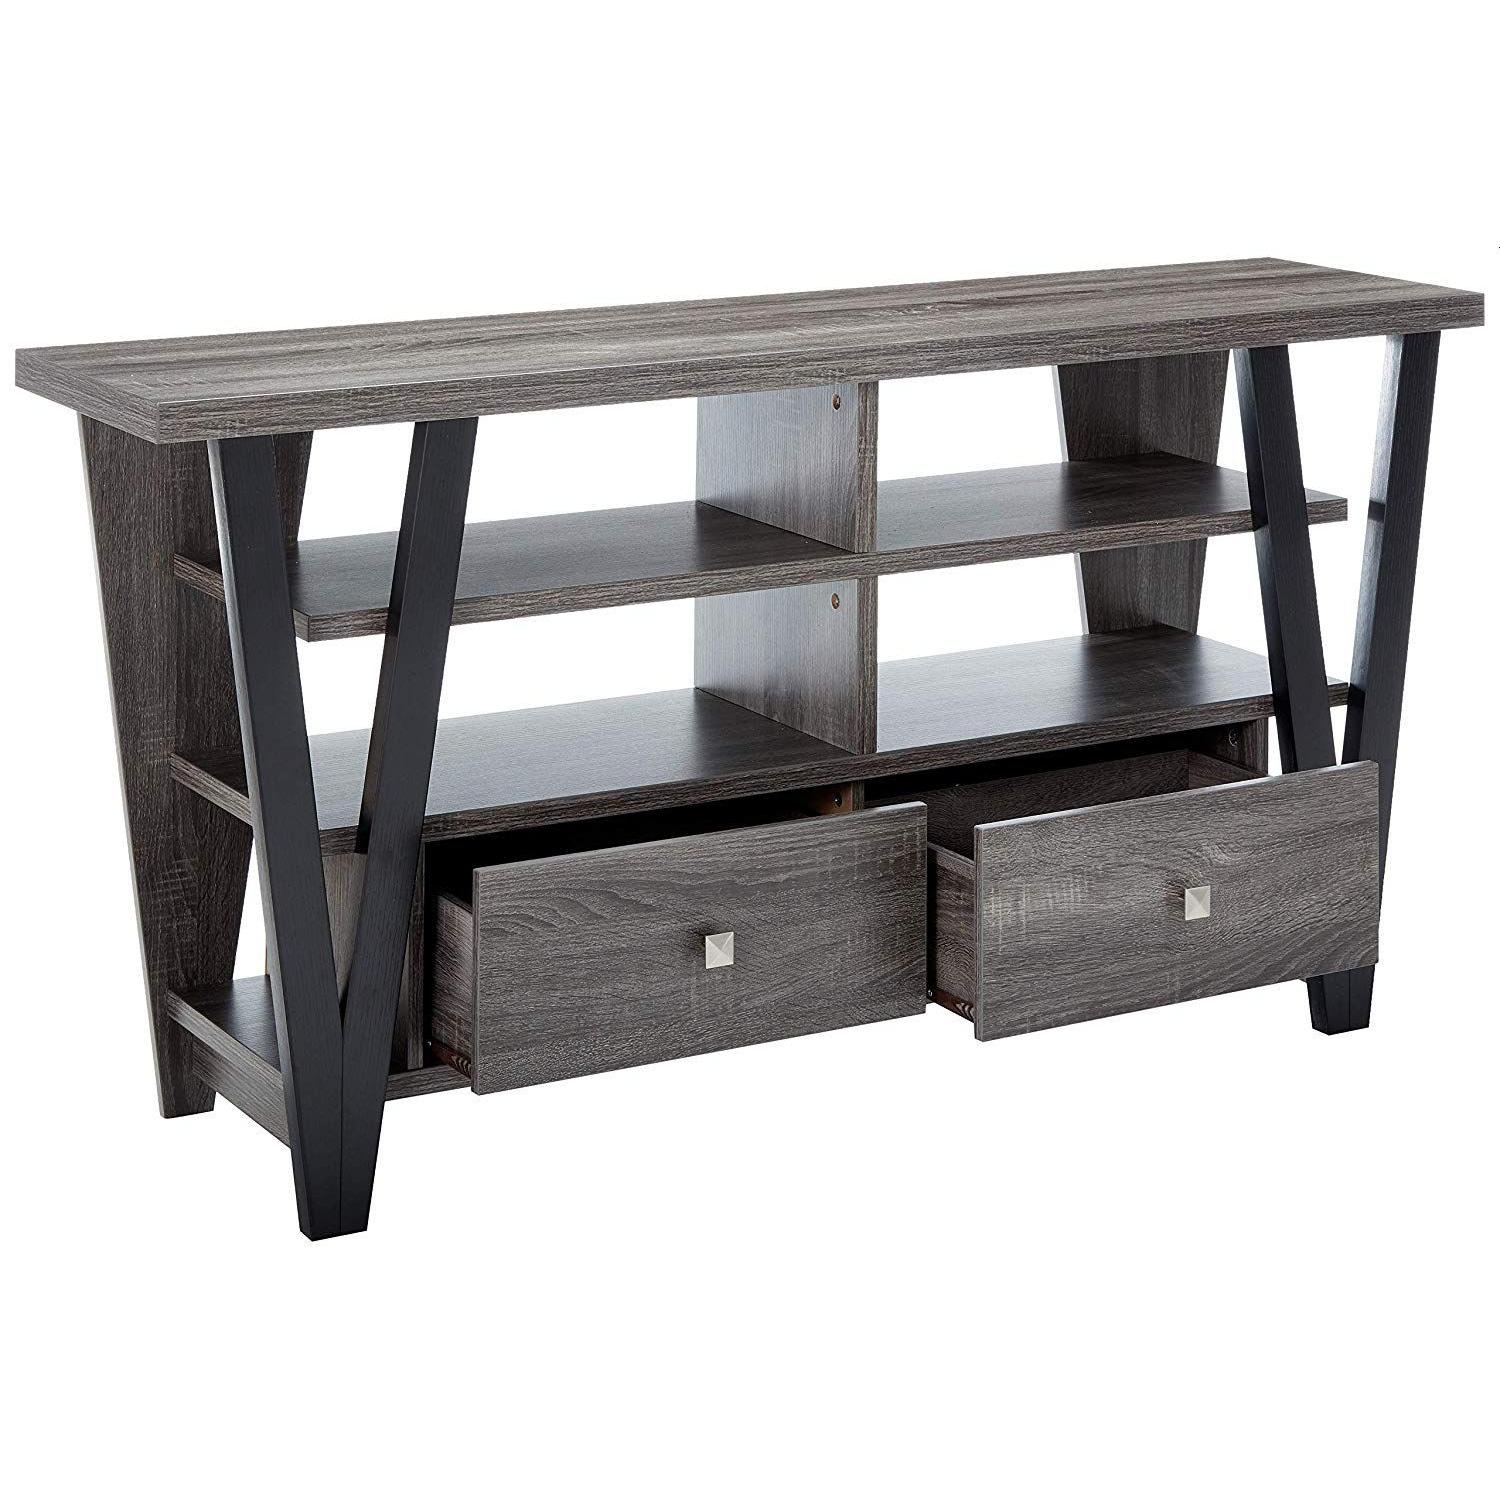 Glam Style TV Console w/ Mirror Accent - image-8